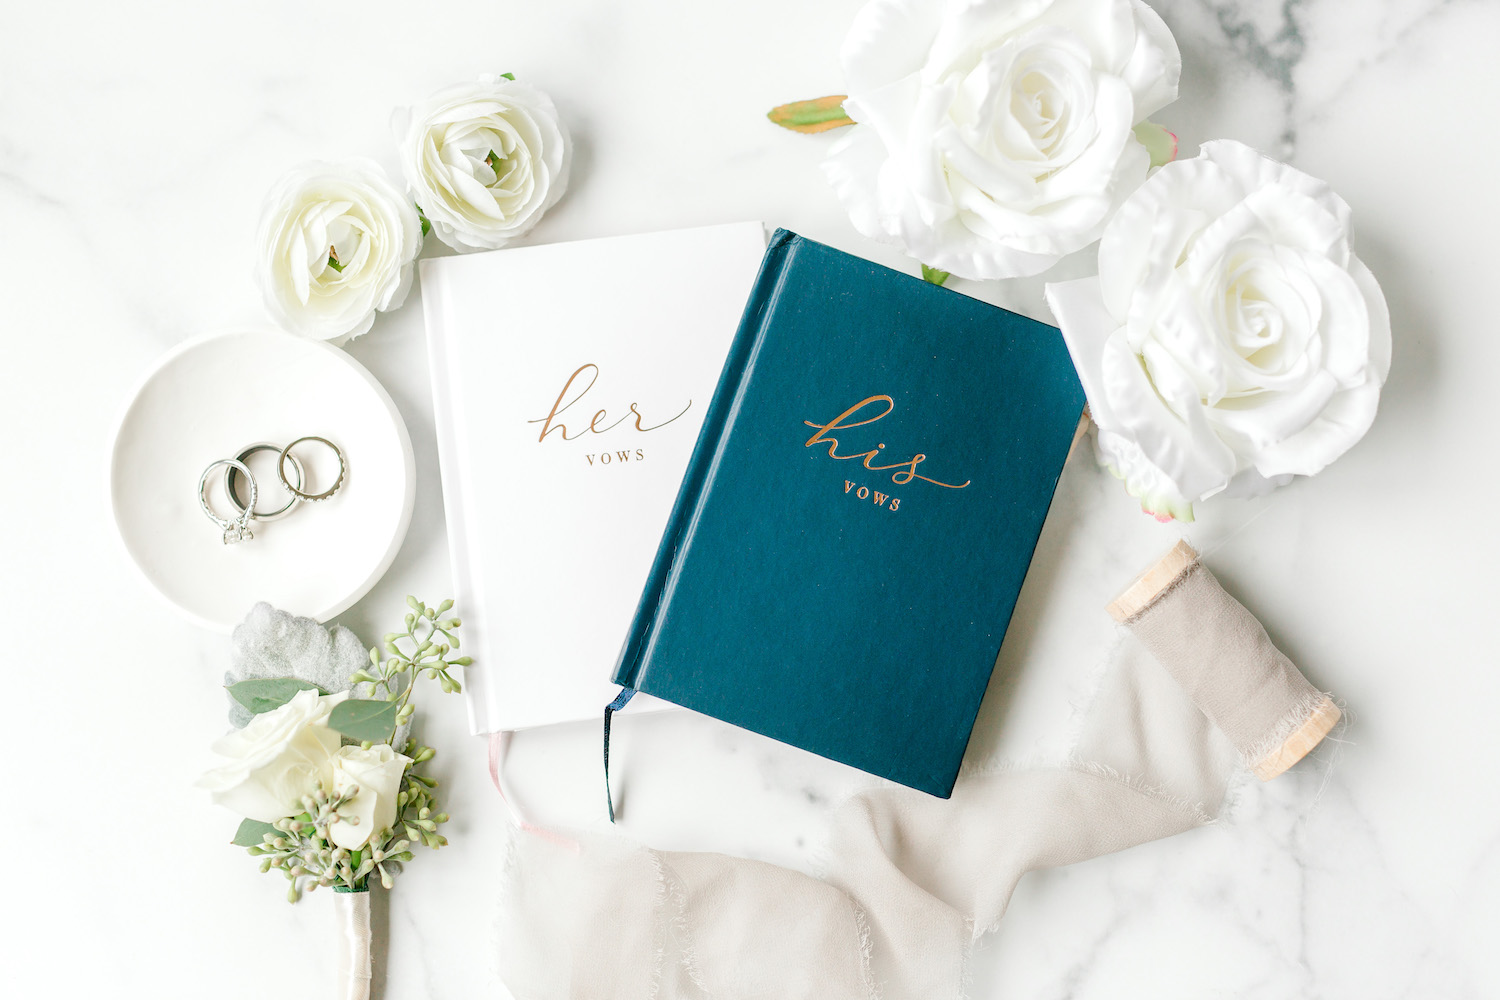 His and Her vow book of Wallinwood Springs Golf Course wedding